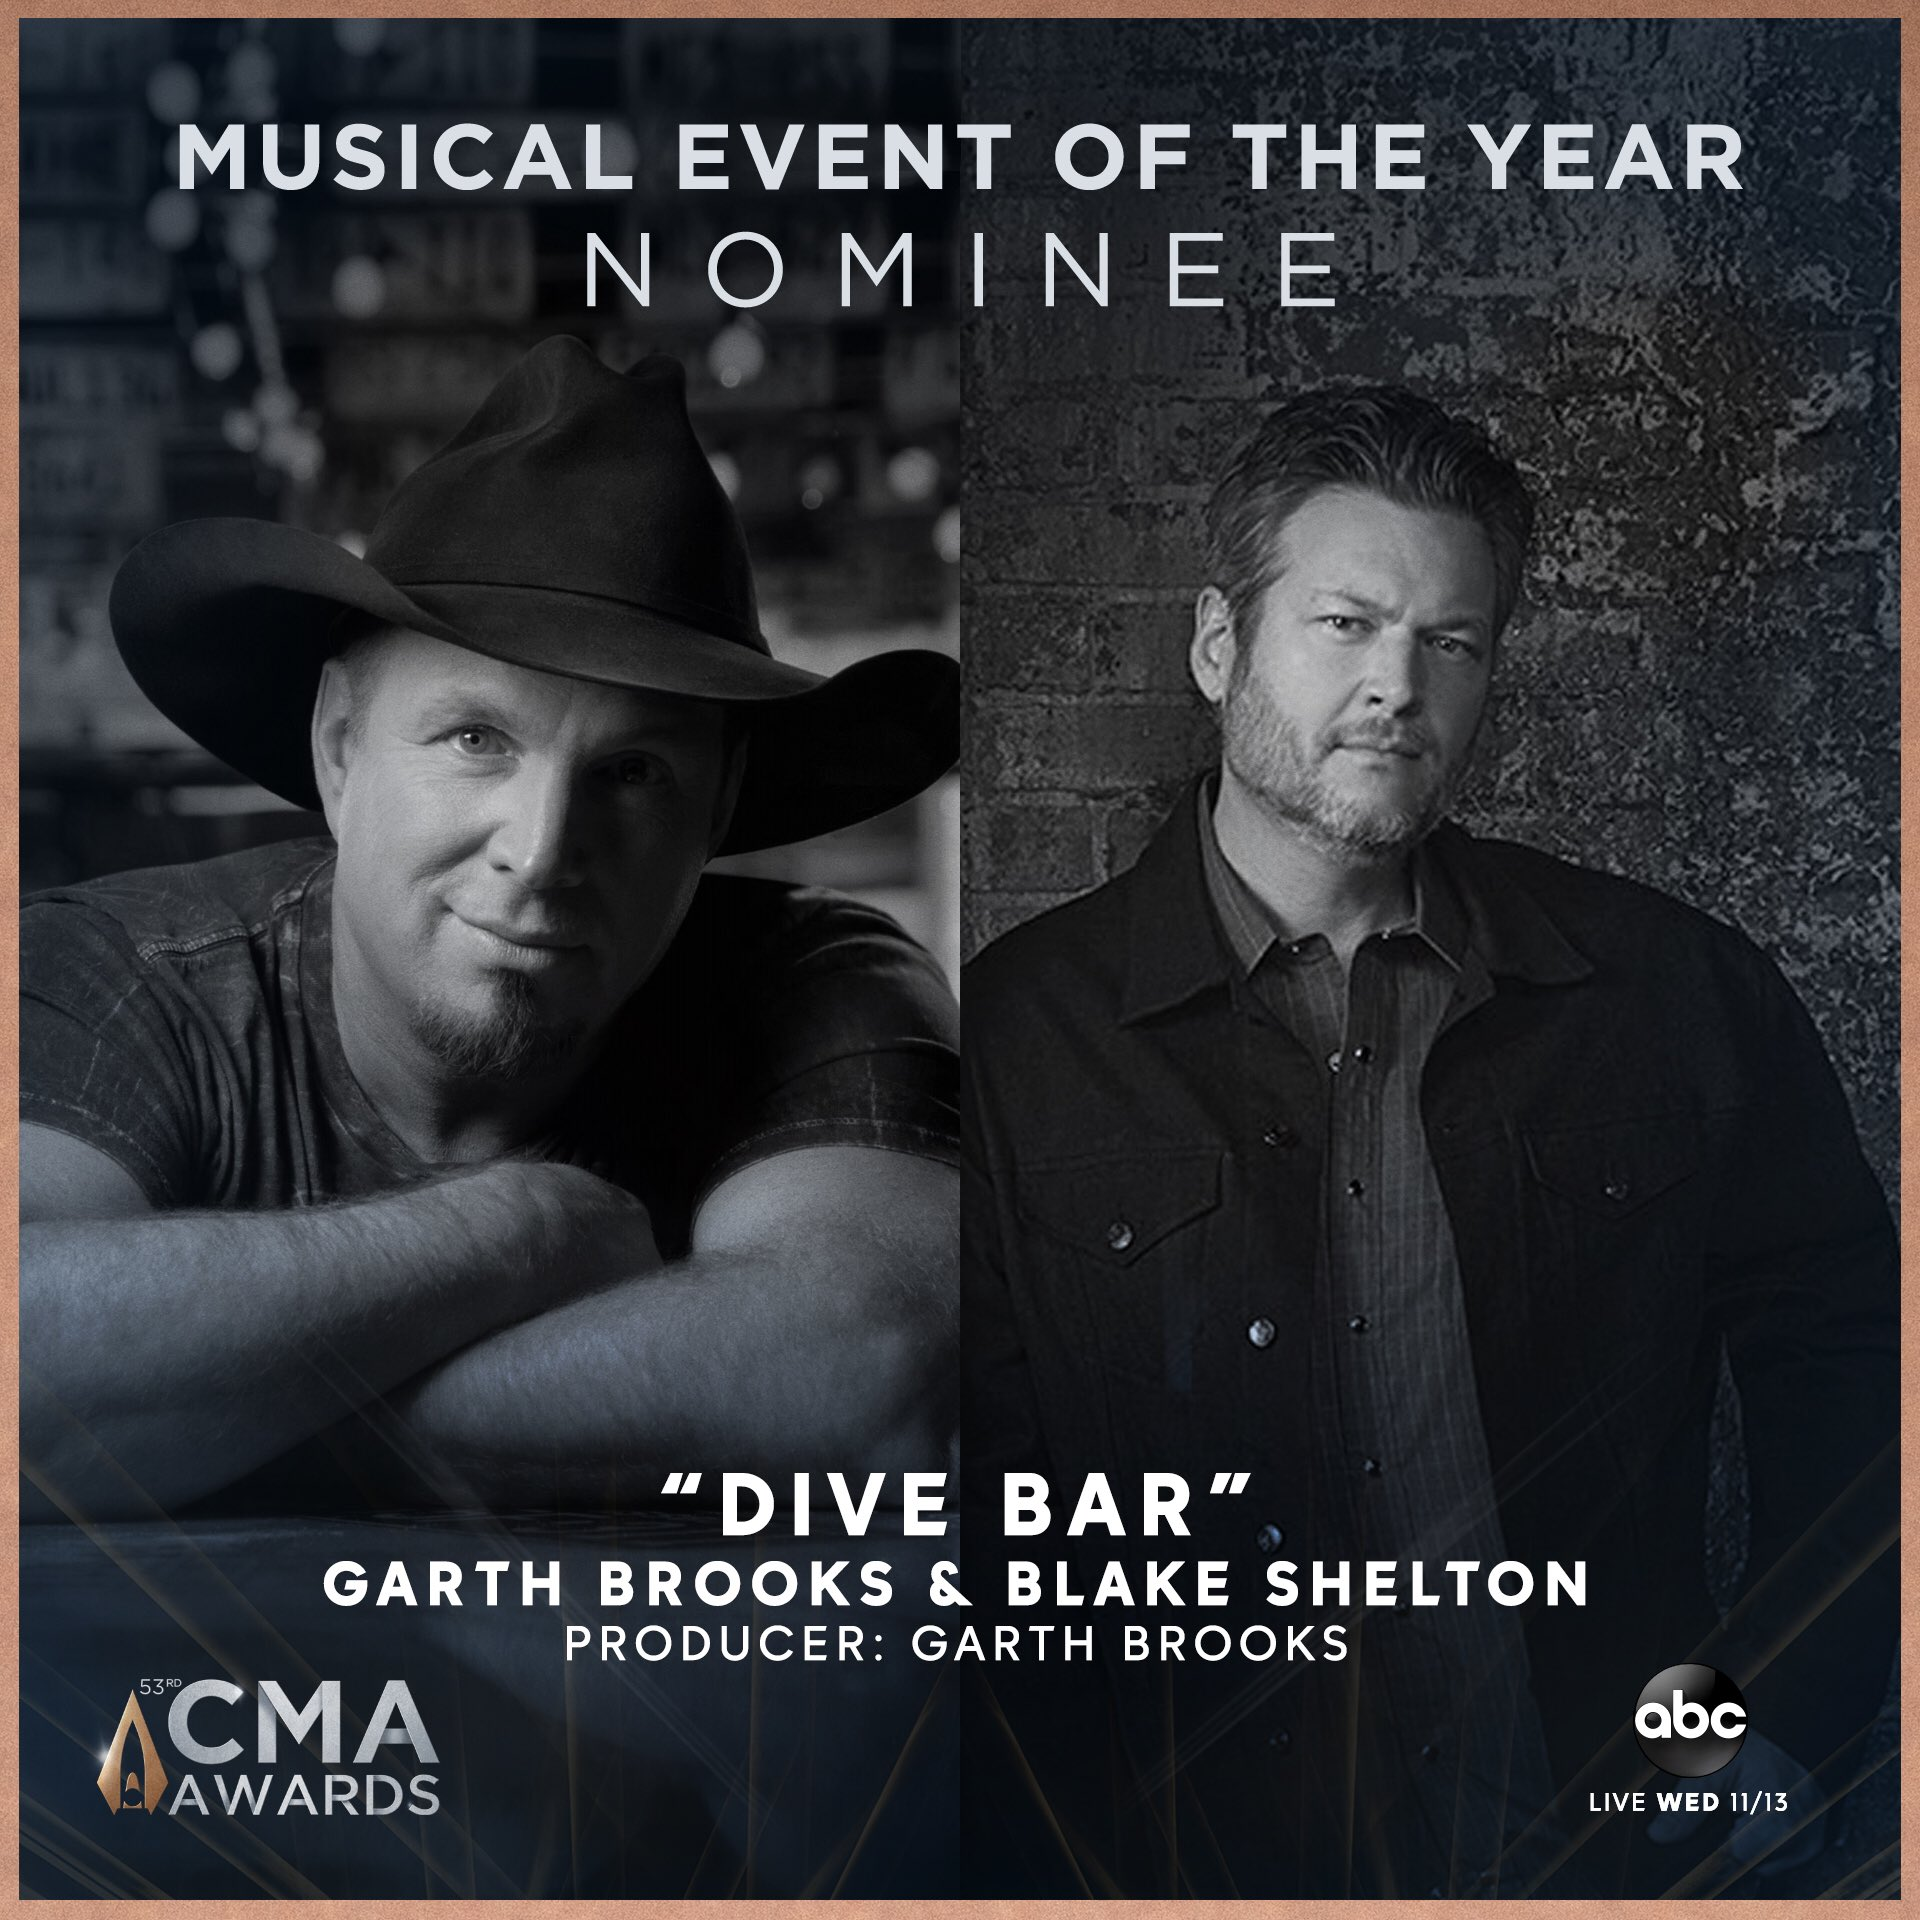 Garth Brooks nominated for CMA music event of the year